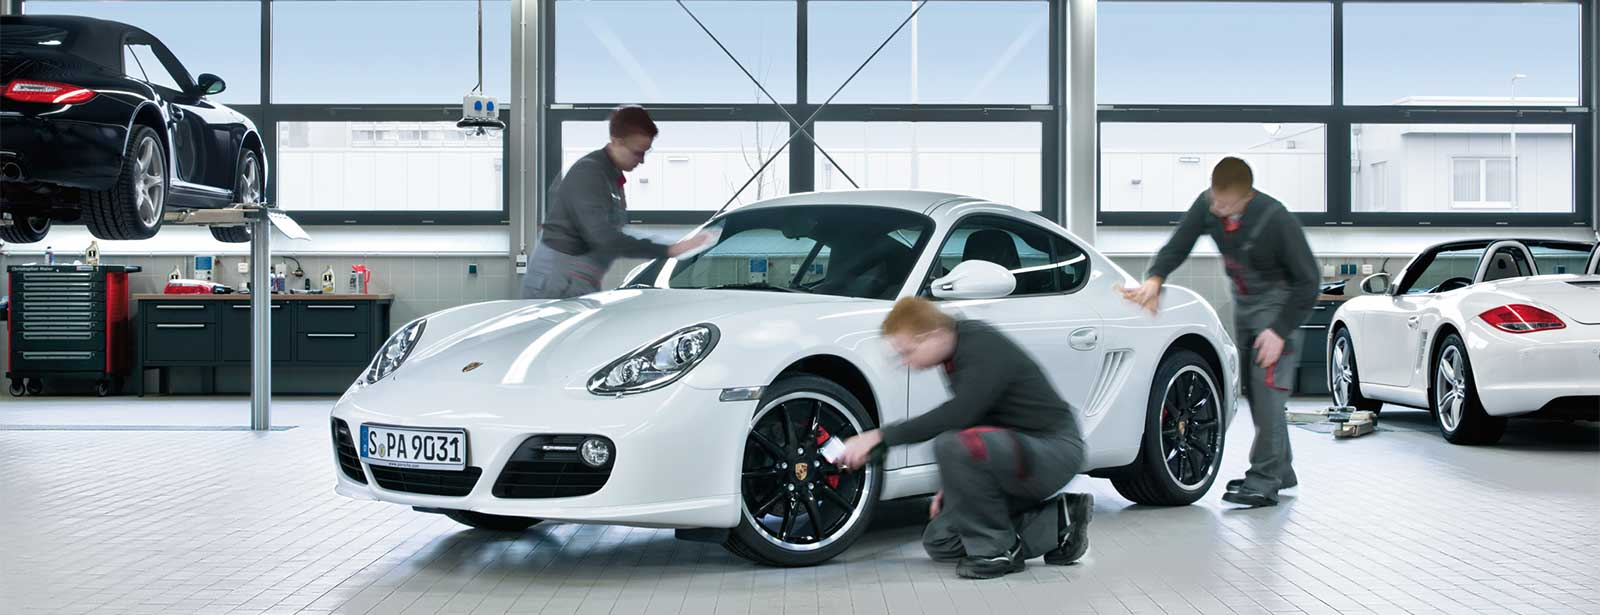 Porsche Service | Winter-Pflegeaktion